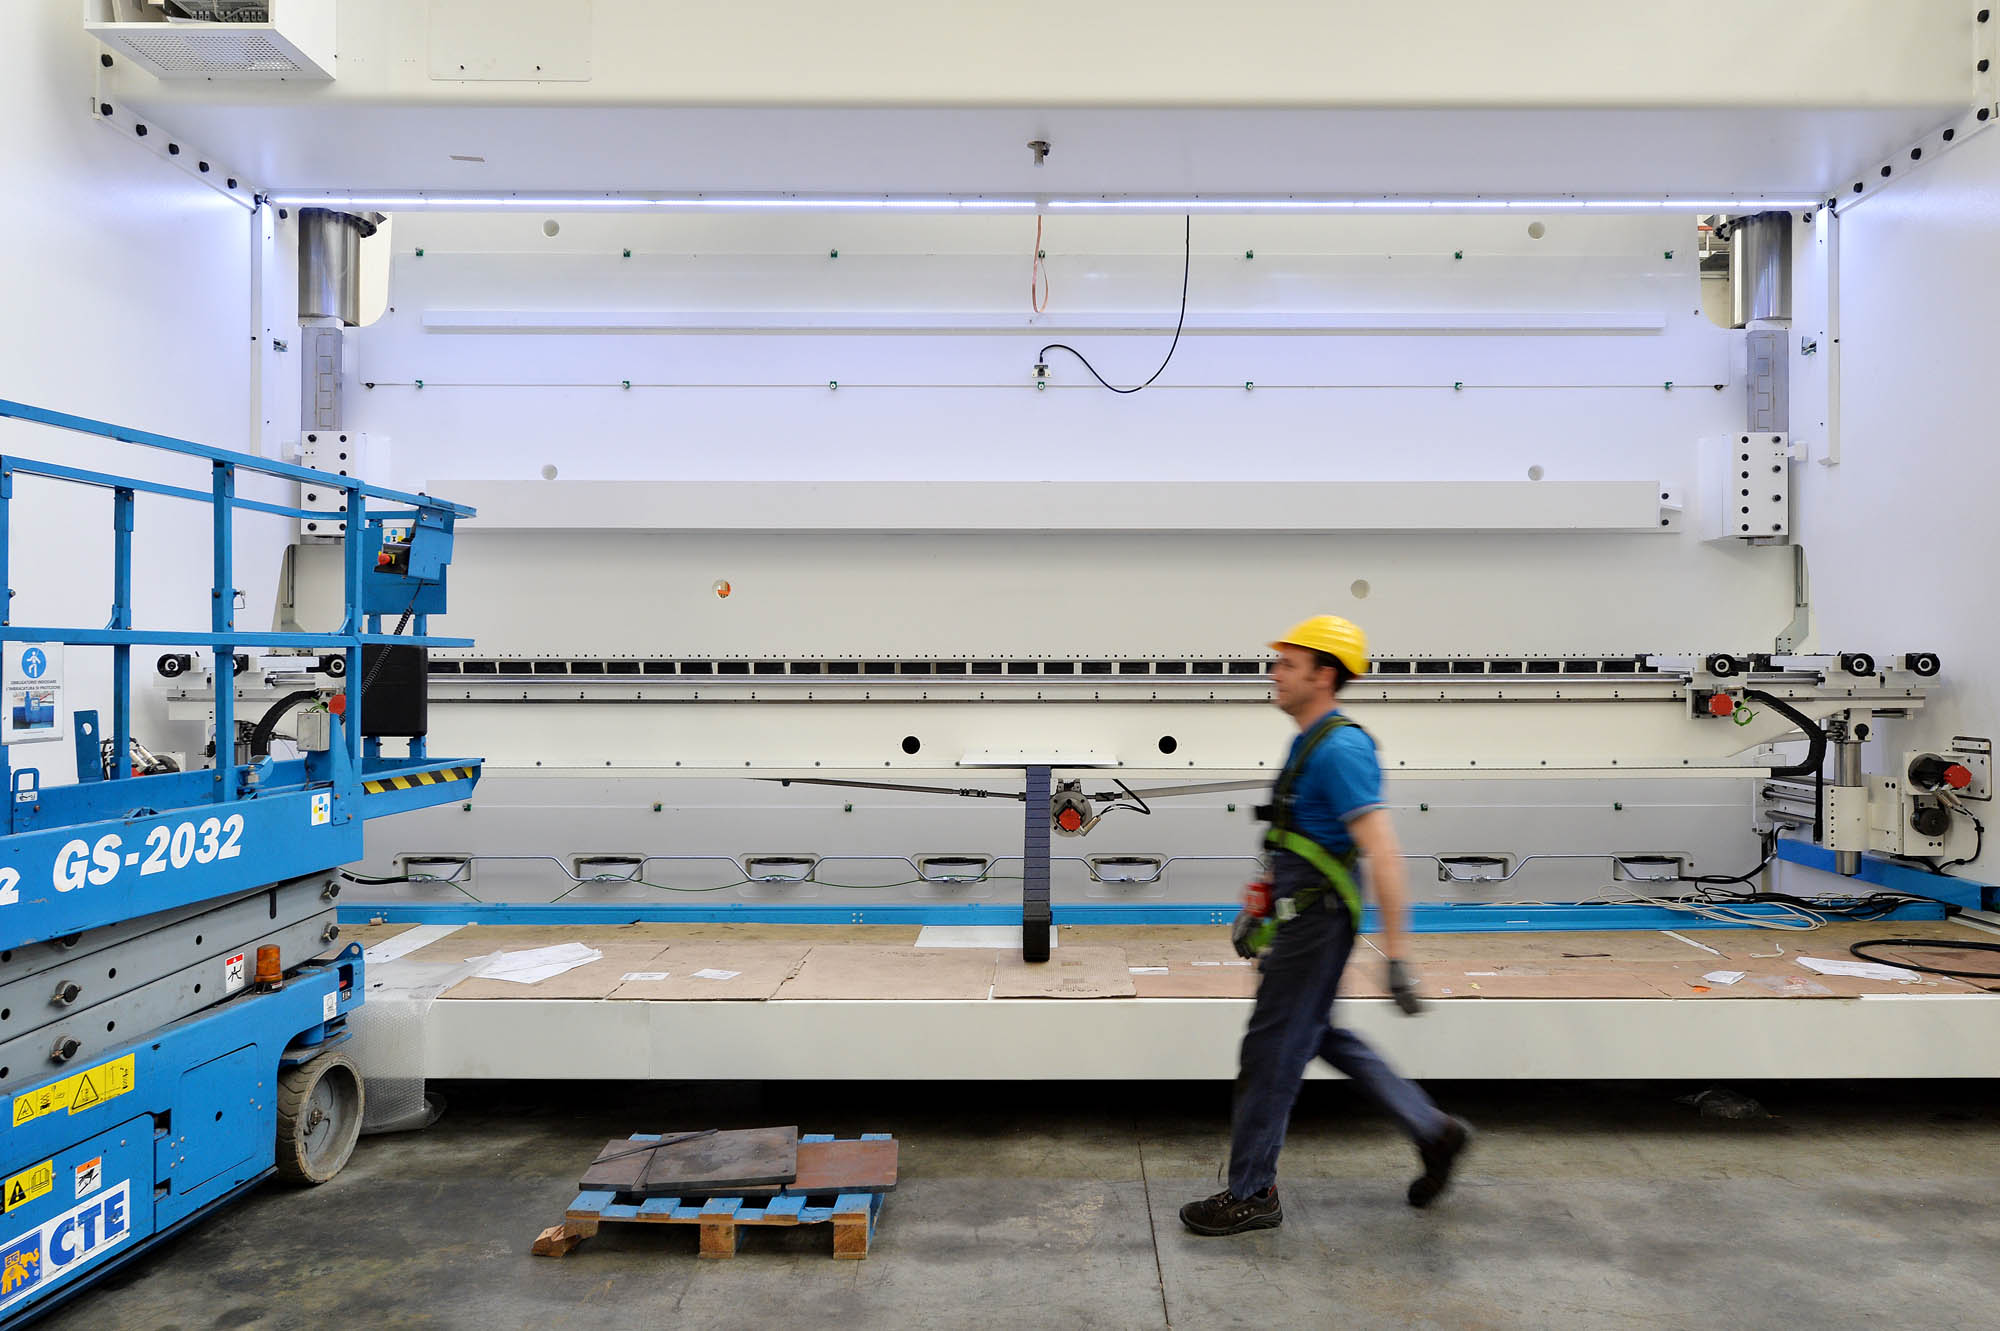 european manufacturer of press brakes